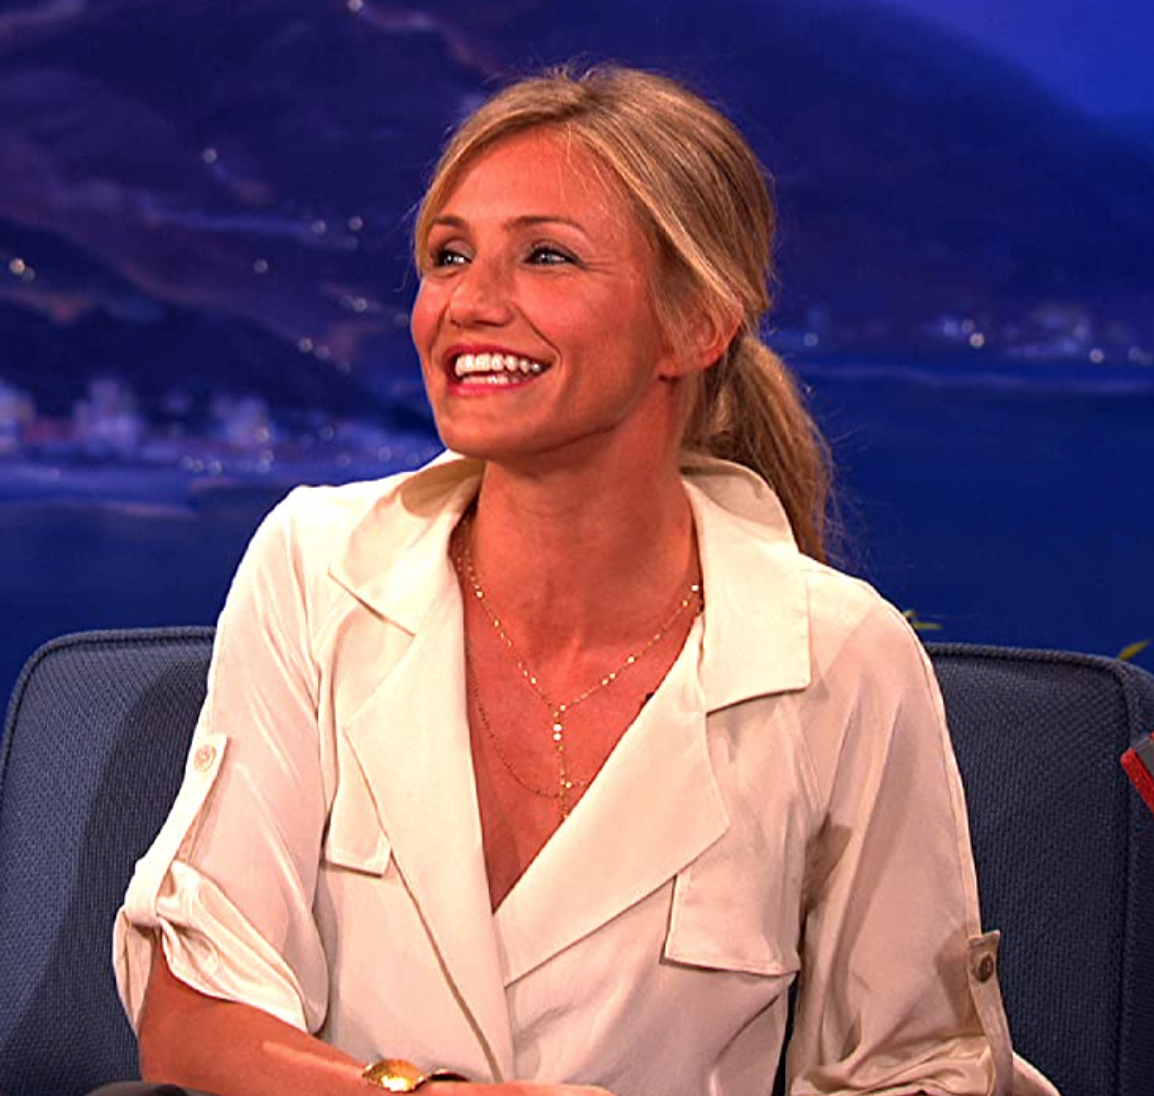 Screen Shot 2021 03 26 at 9.47.38 am e1616752098547 10 Things You Probably Didn't Know About Cameron Diaz